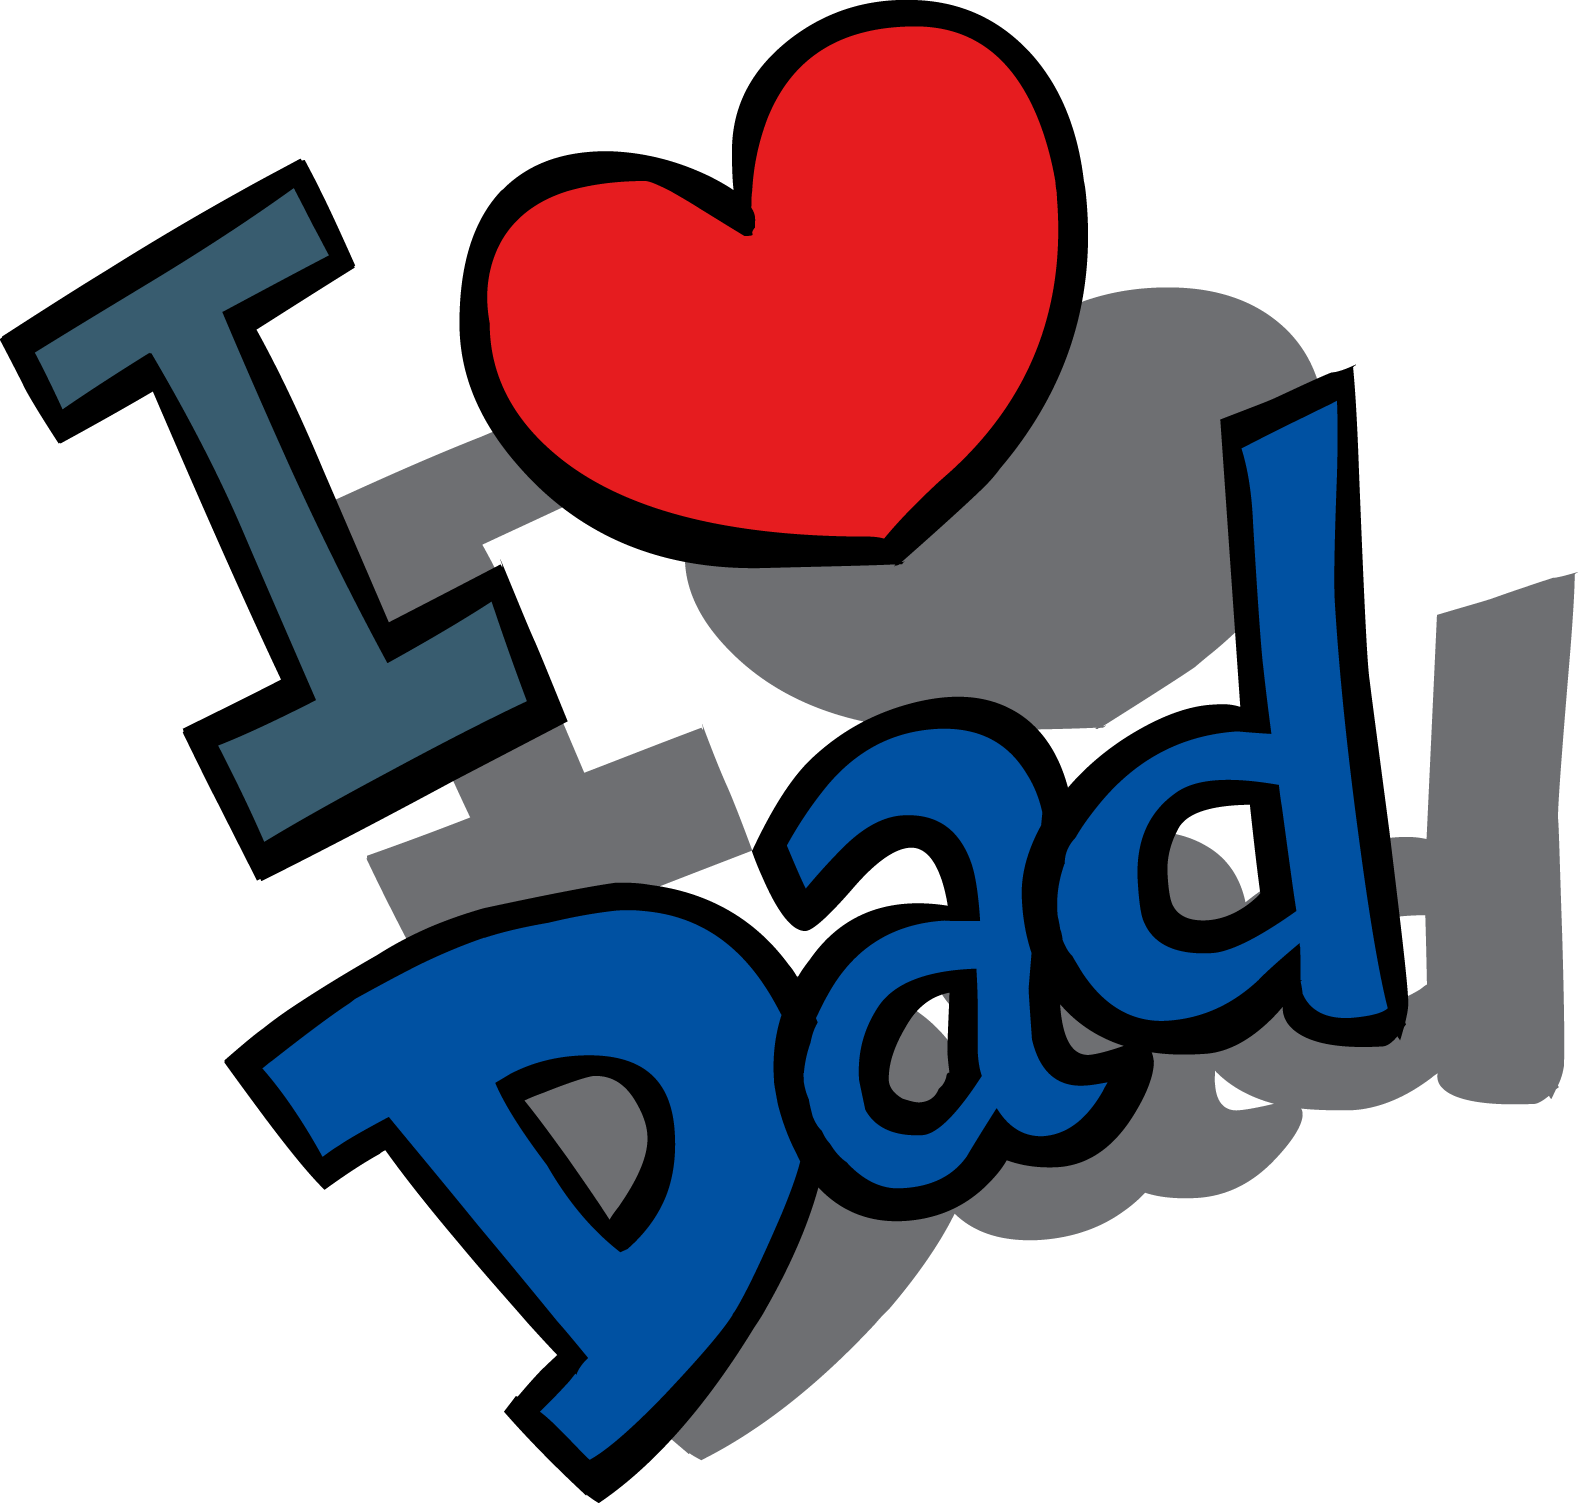 medium resolution of fathers day free clip art father day clipart image 16379